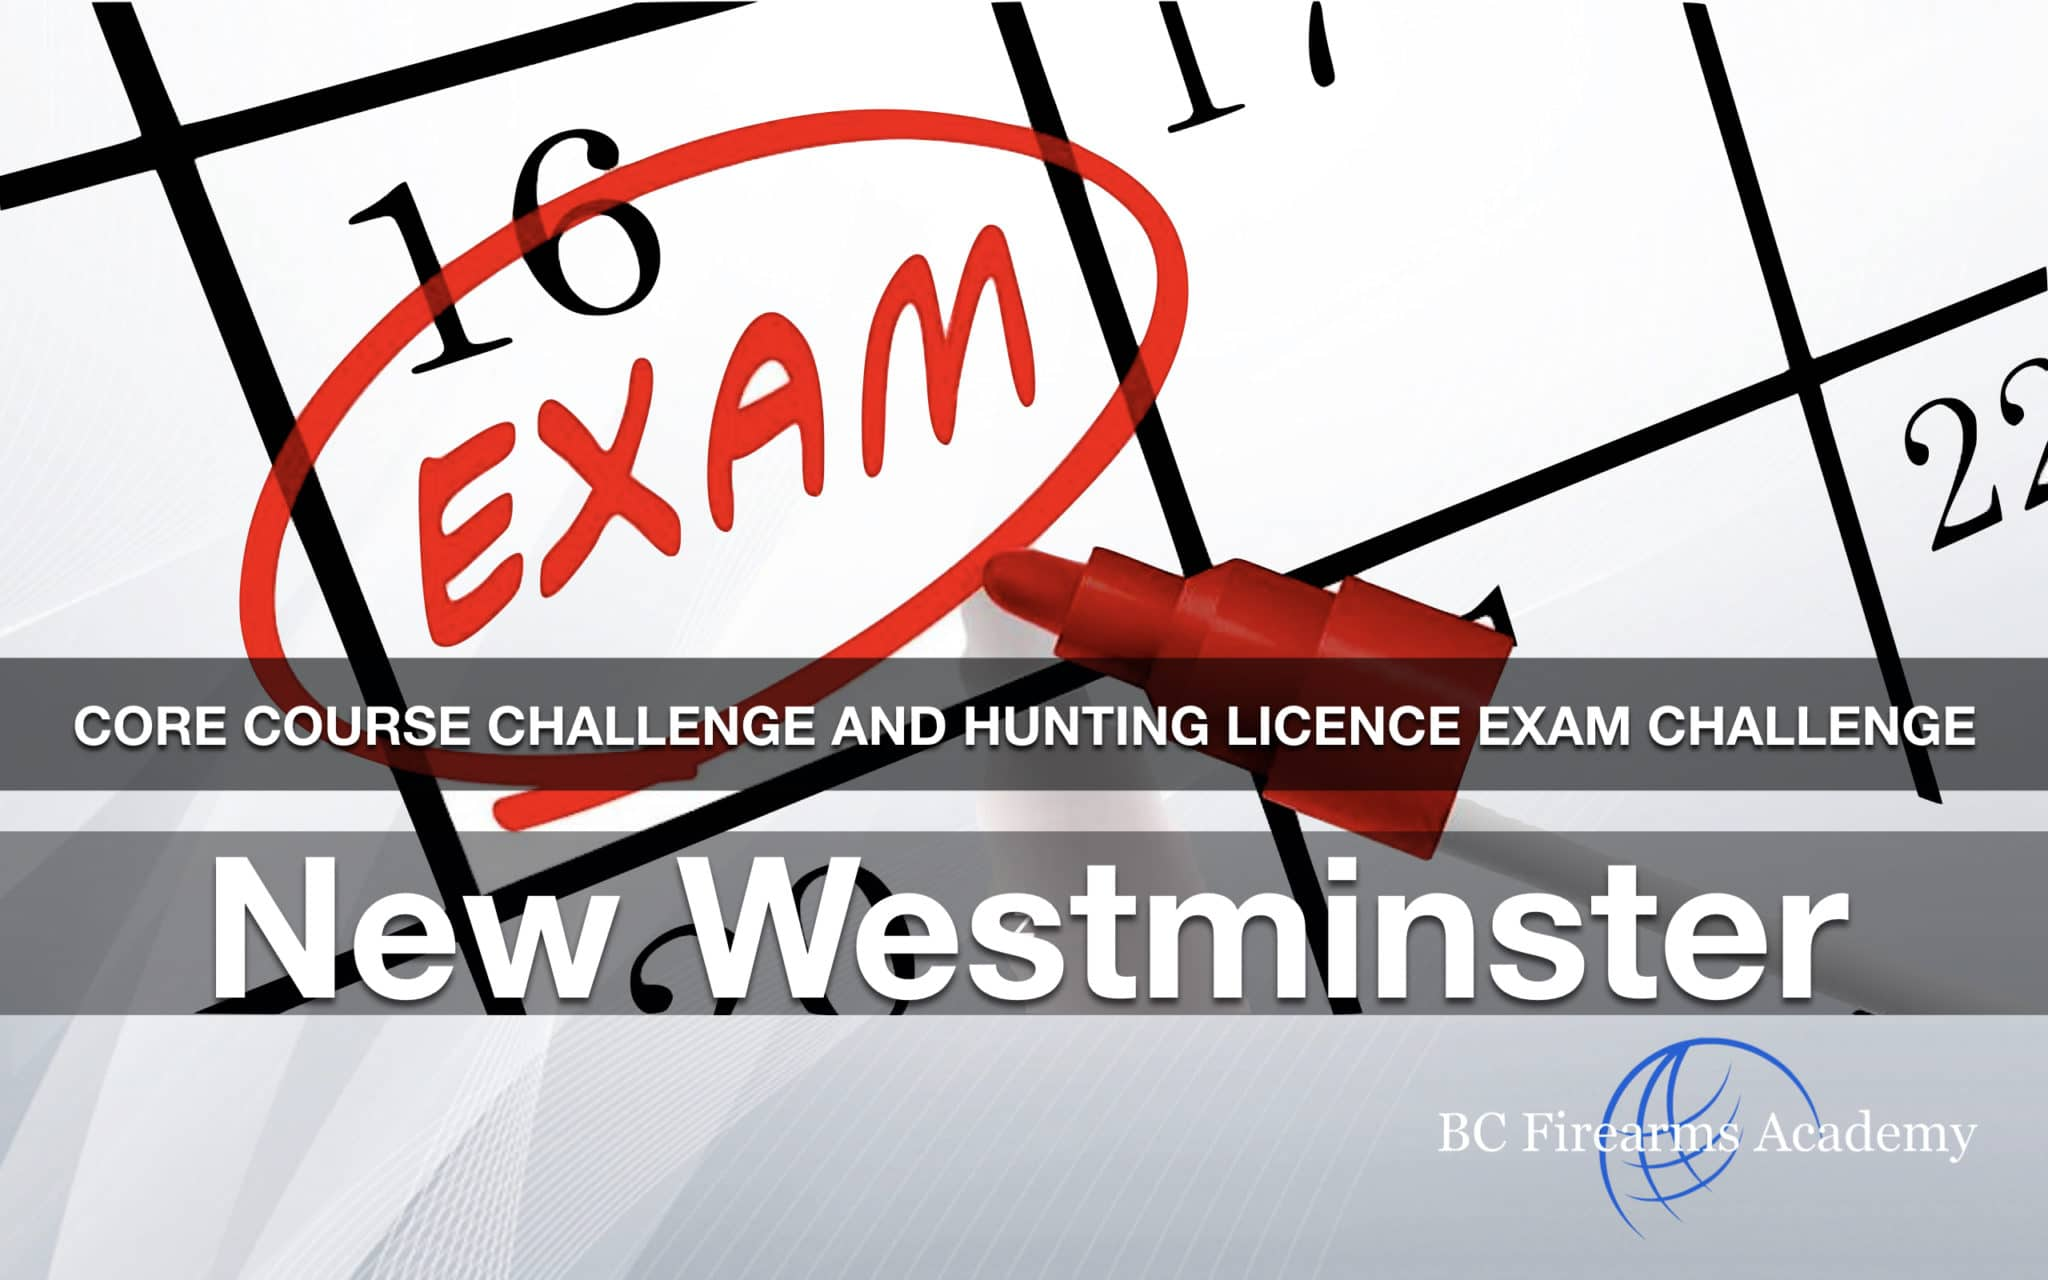 CORE Course Challenge and Hunting Licence Exam Challenge JIBC New Westminster March 3 Sunday